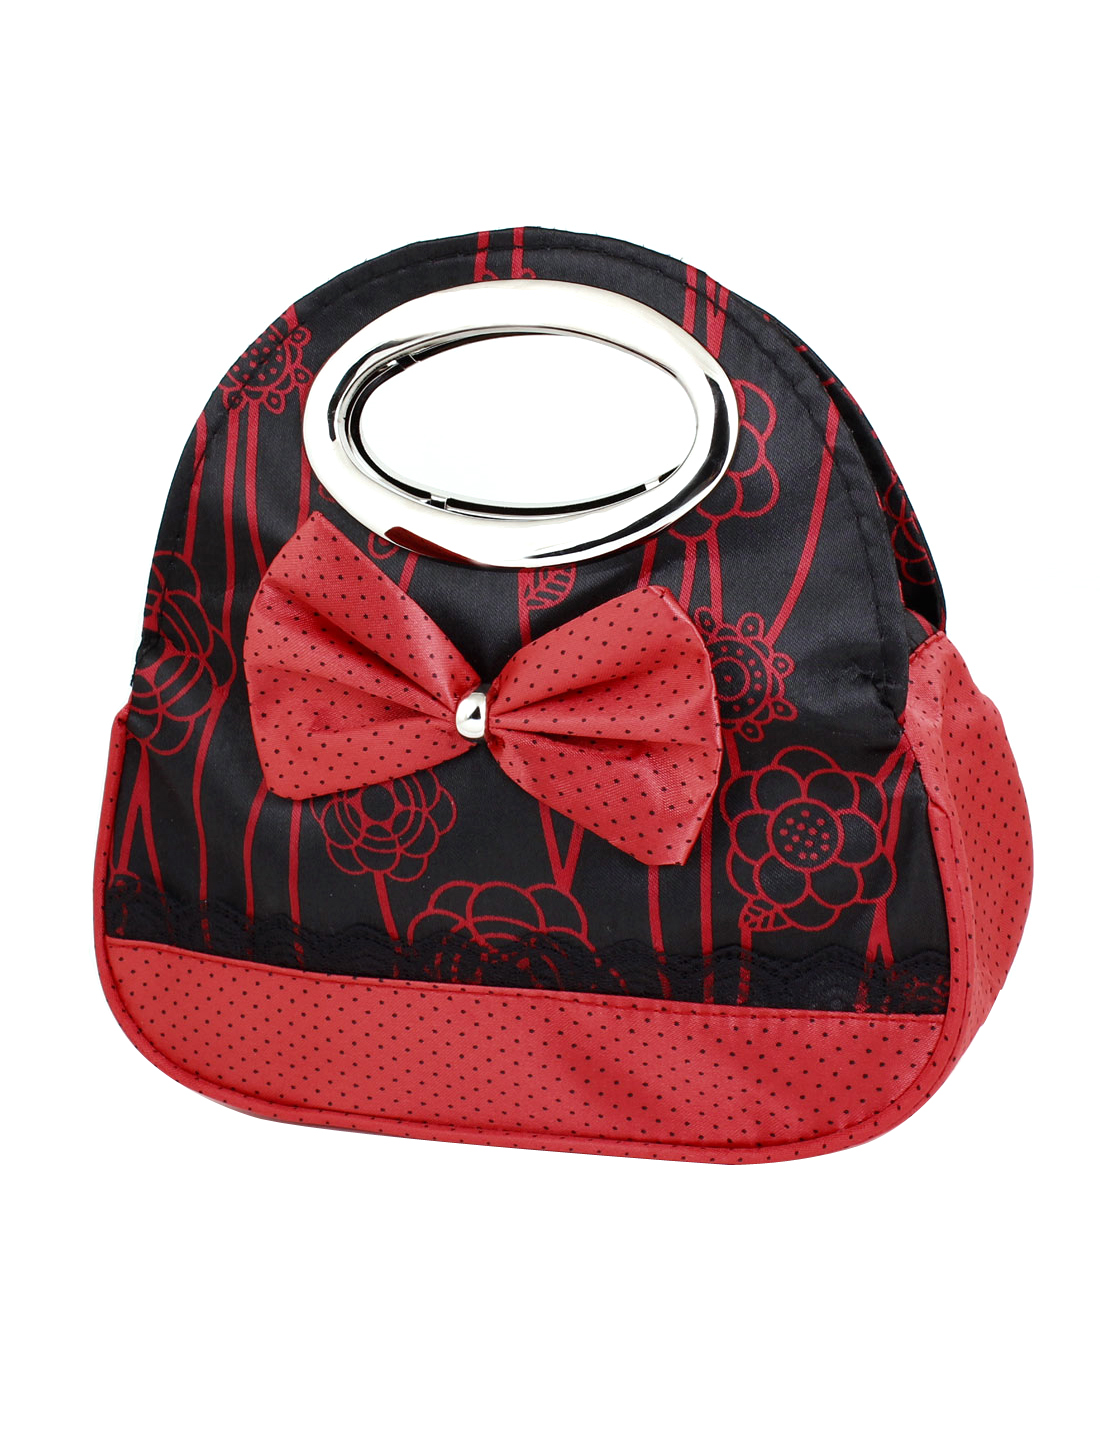 Bowknot Decor Zipper Closure Metal Tote Elegant Bag Handbag Red for Women